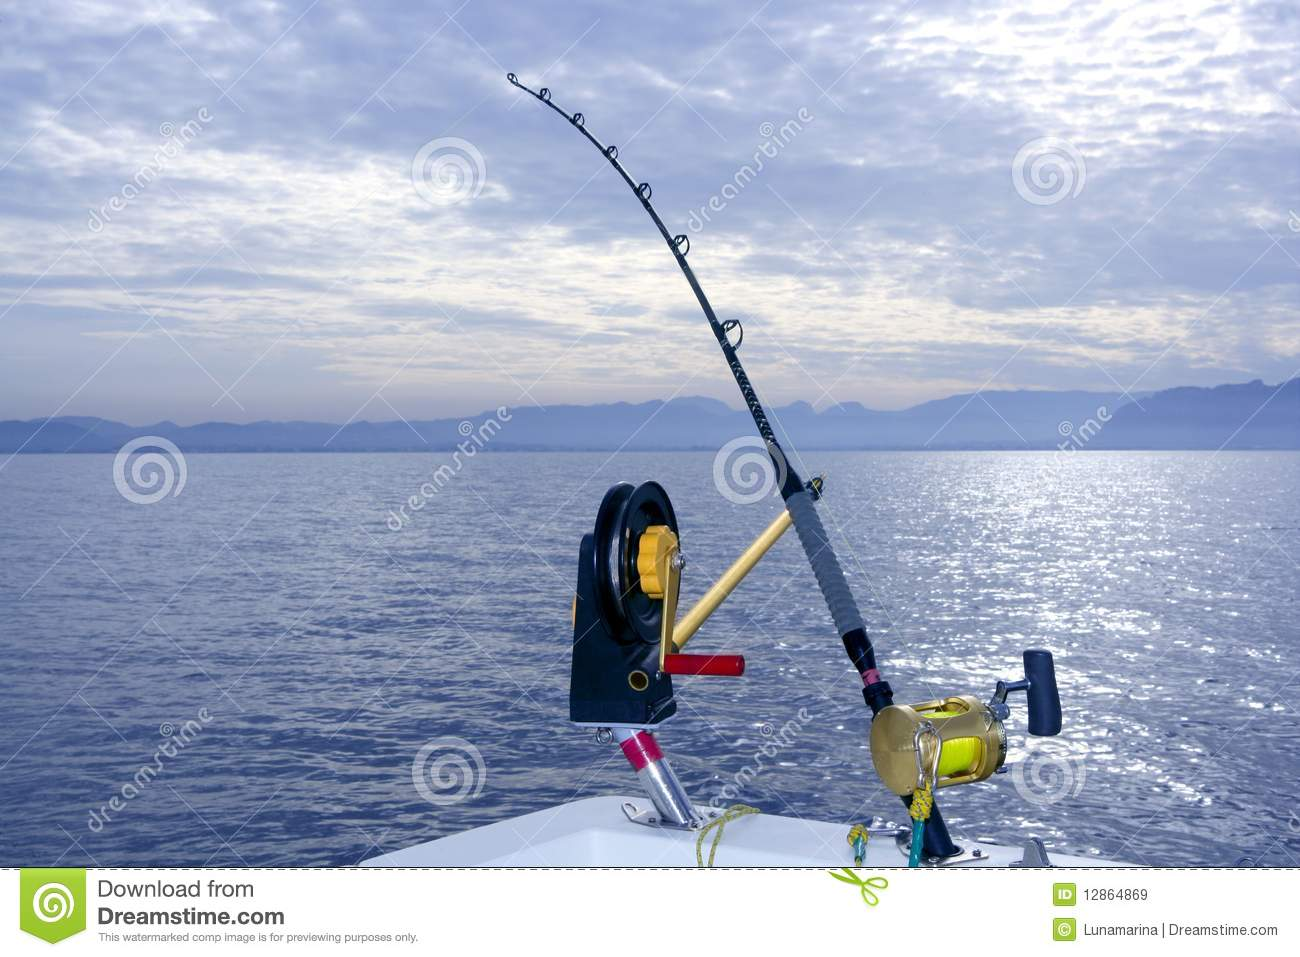 Downrigger Boat Gear Saltwater Trolling Tackle Royalty Free Stock Images - Image: 12864869